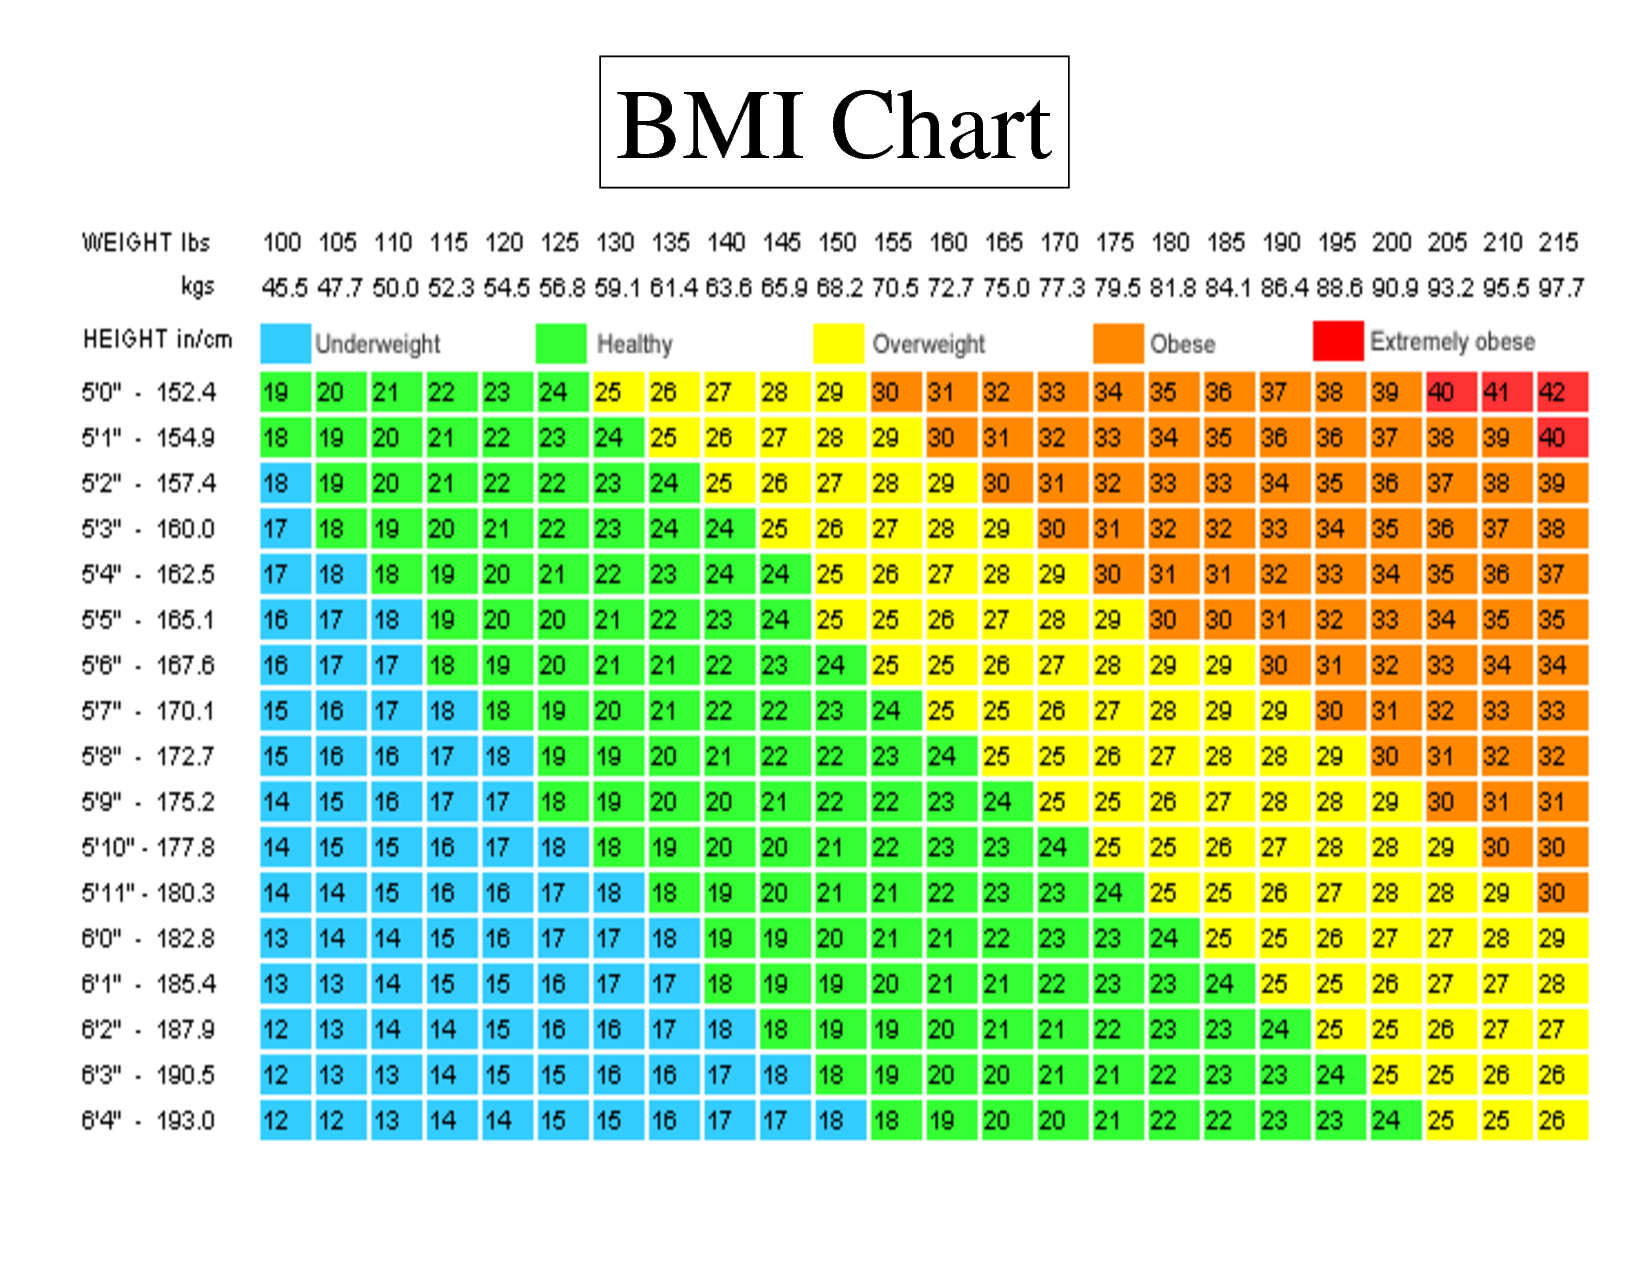 Body mass index bmi chart weight loss chart lost weight and bmi calculator bmi body mass index measurement body fat based height weight applies geenschuldenfo Choice Image